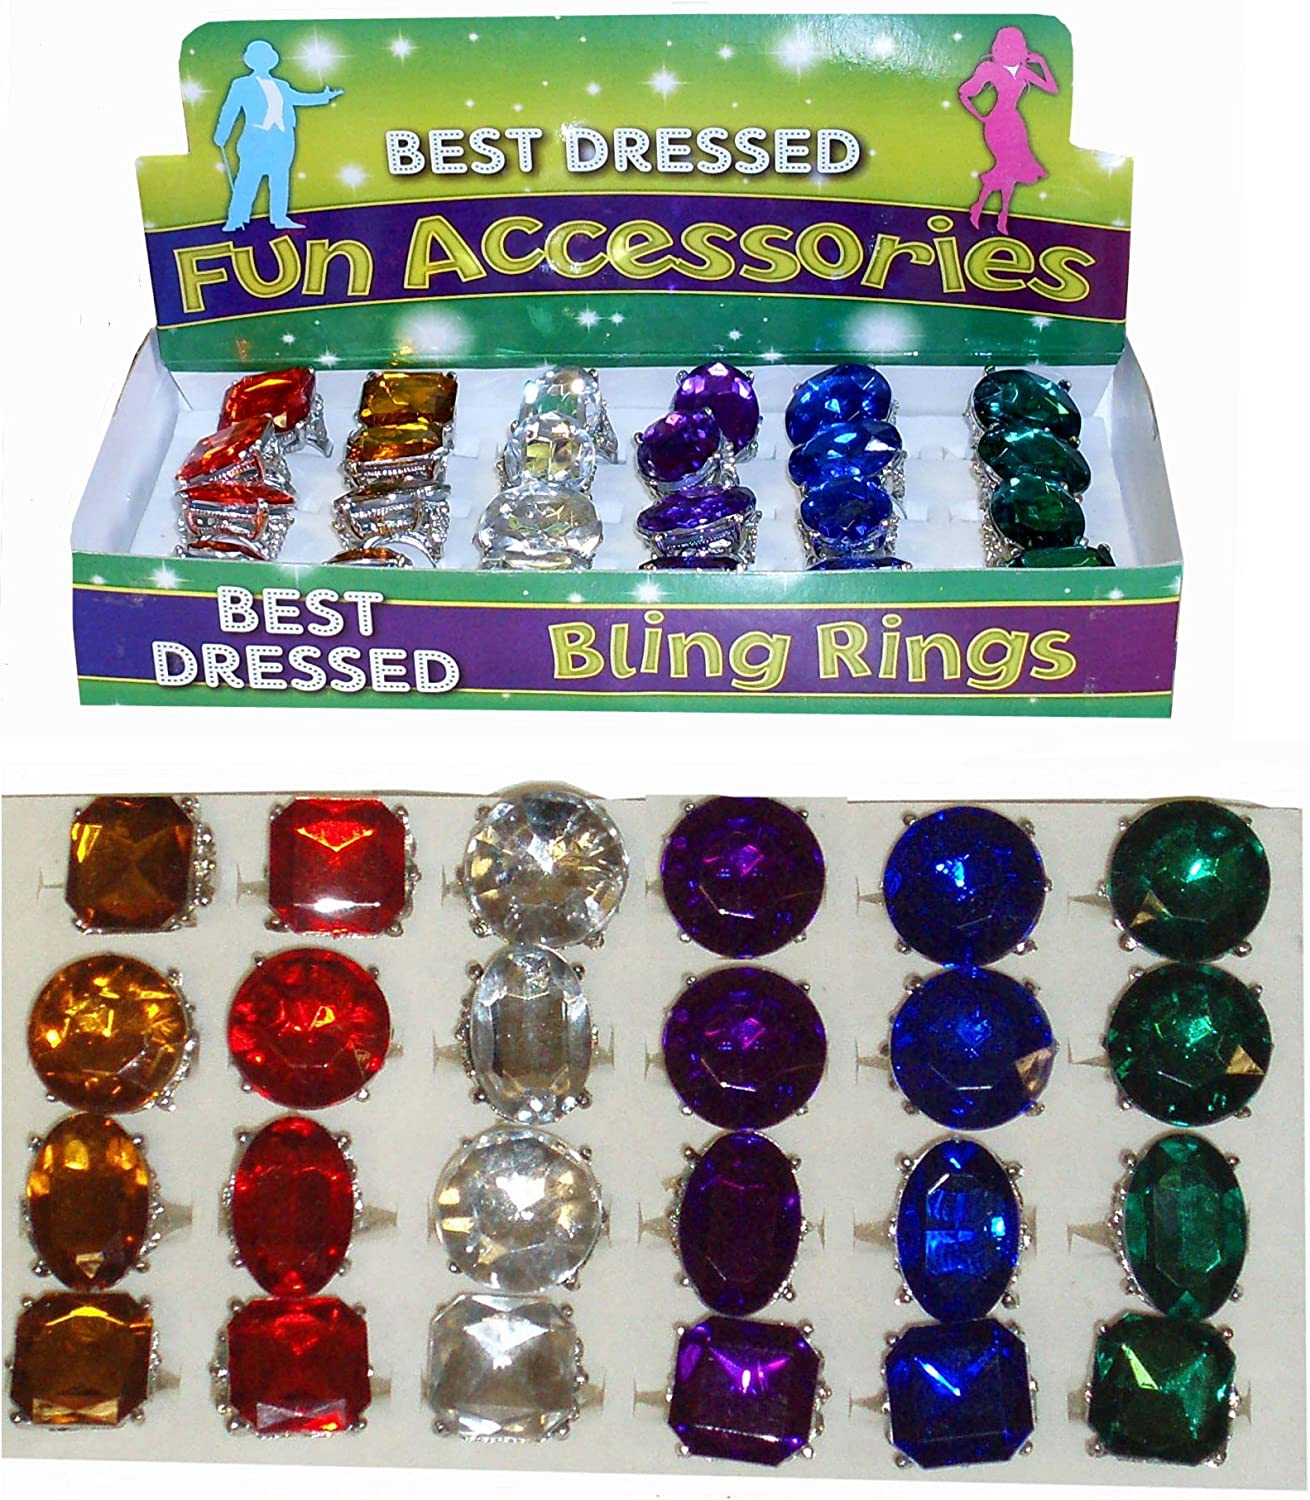 Fancy Max 48% OFF Dress Pimp King Ring Queen Over item handling Jewelled Large